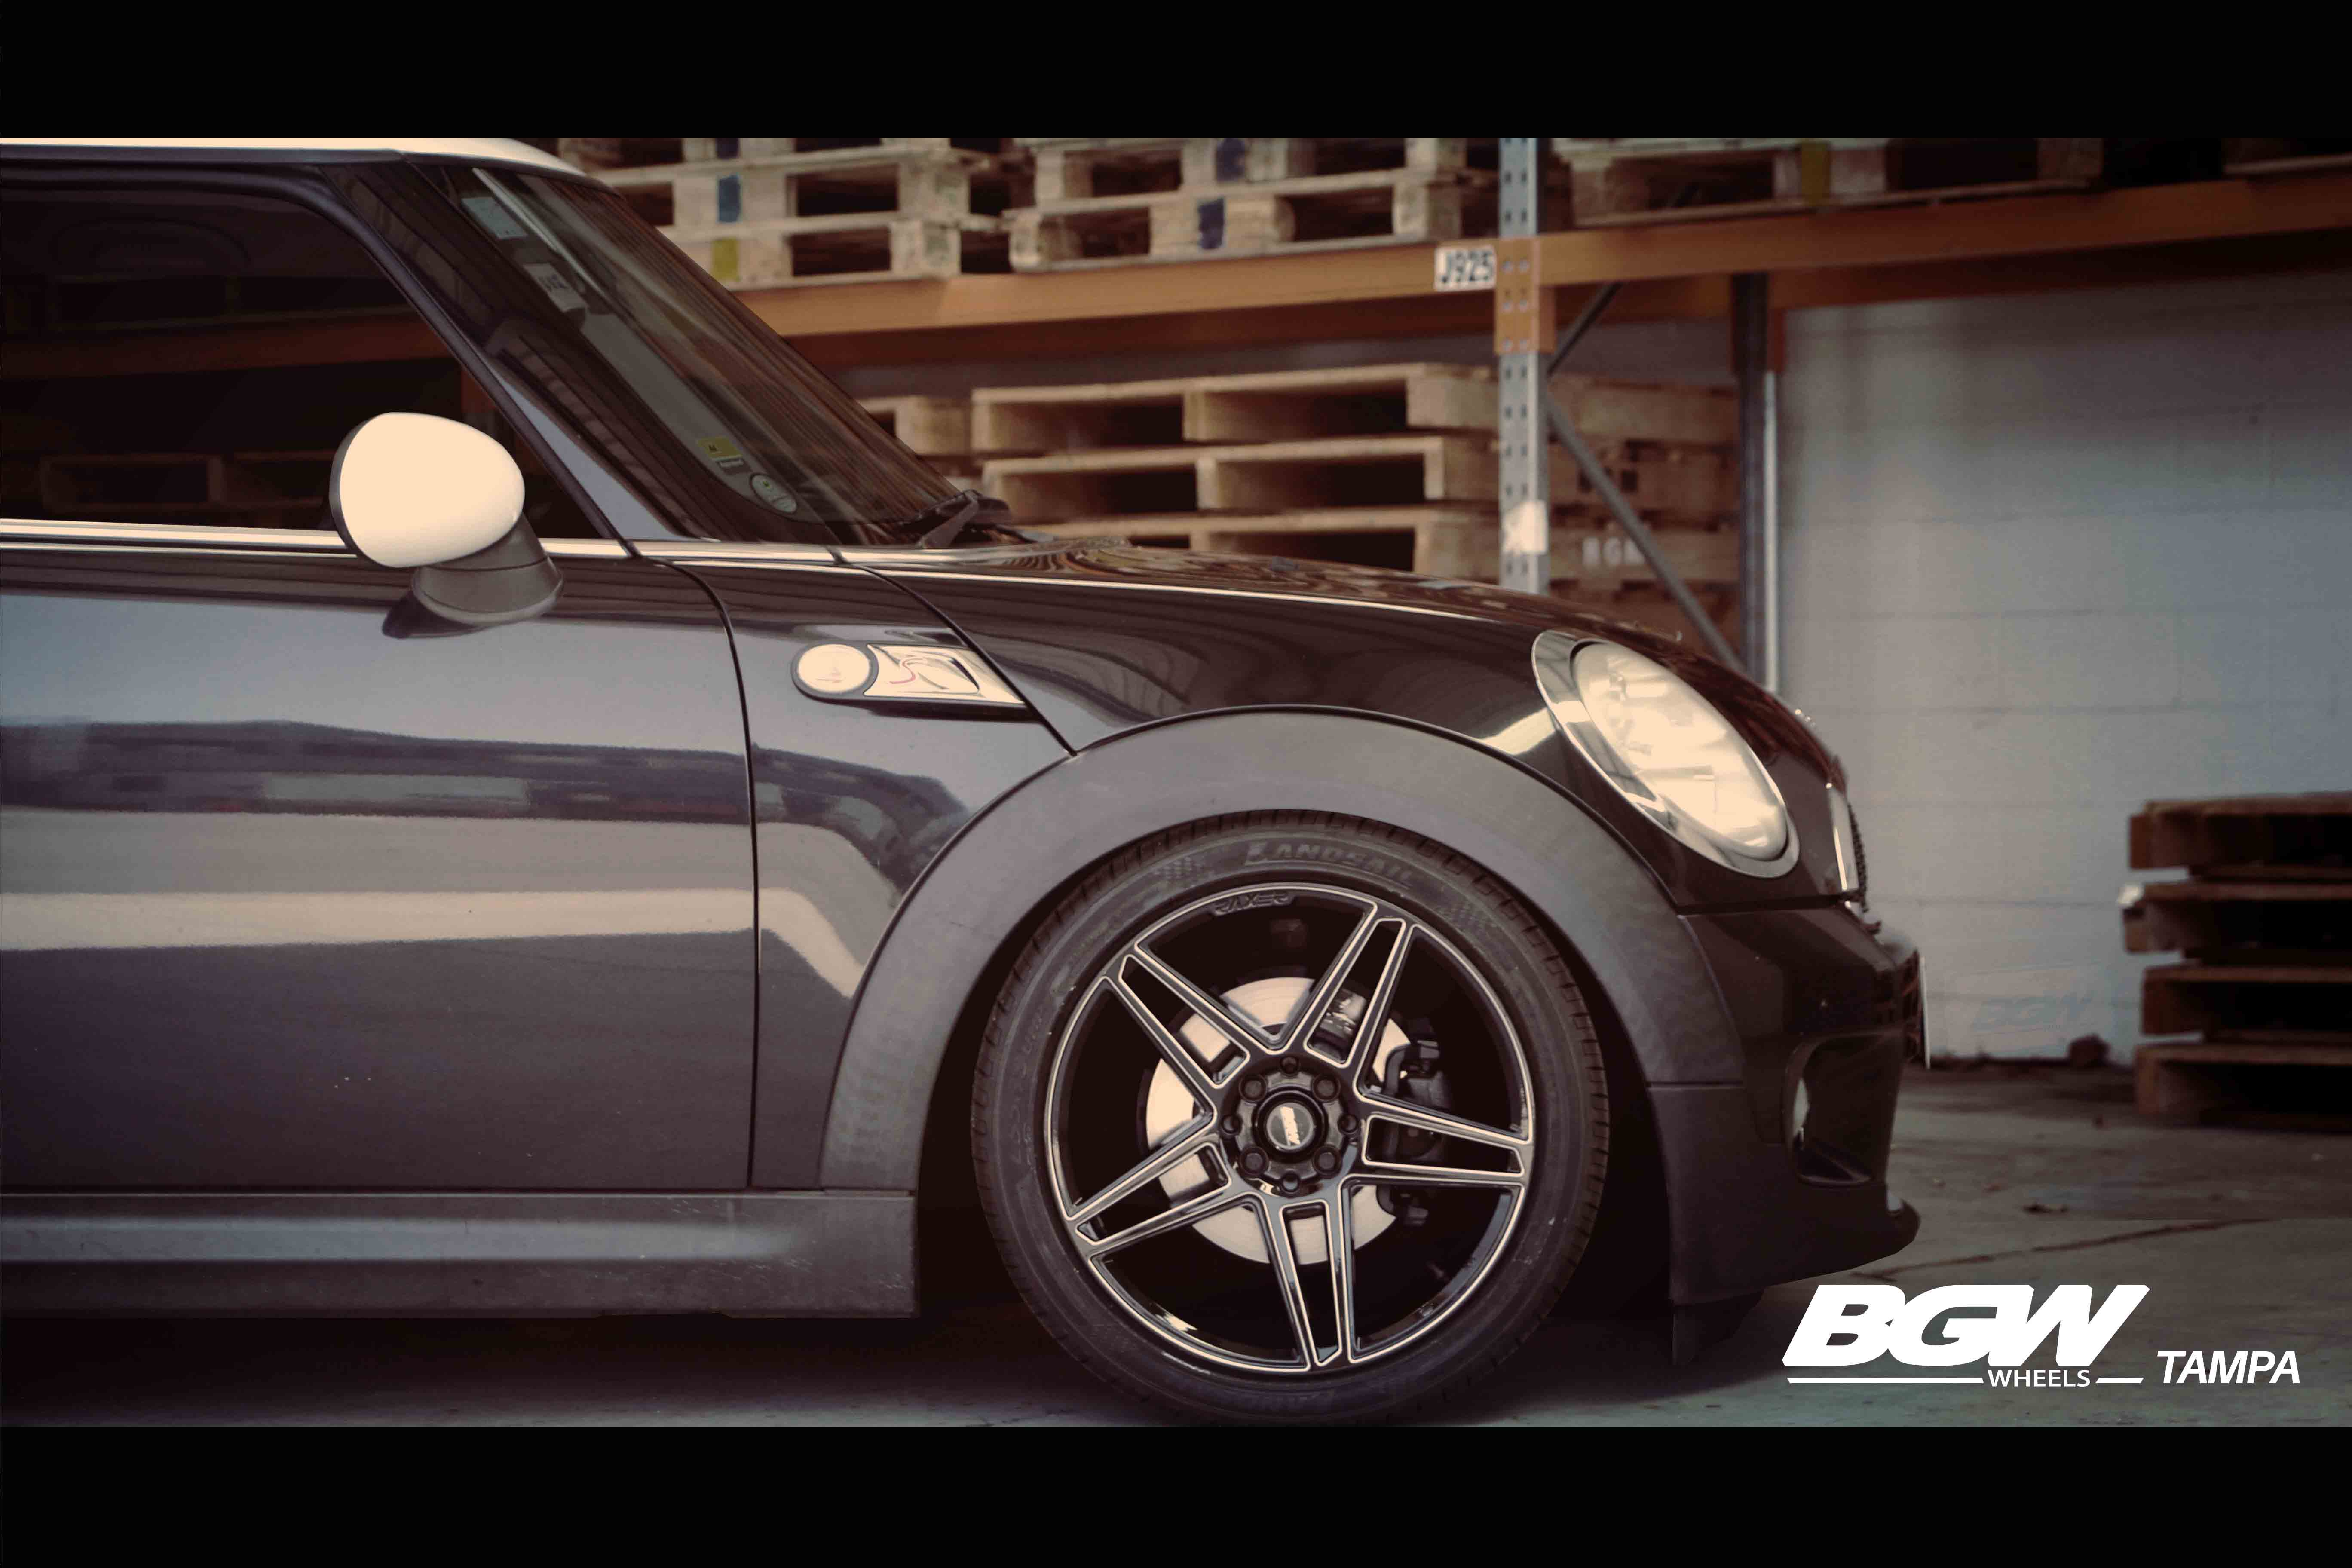 Mini Cooper S on BGW Tampa and Landsail LS588